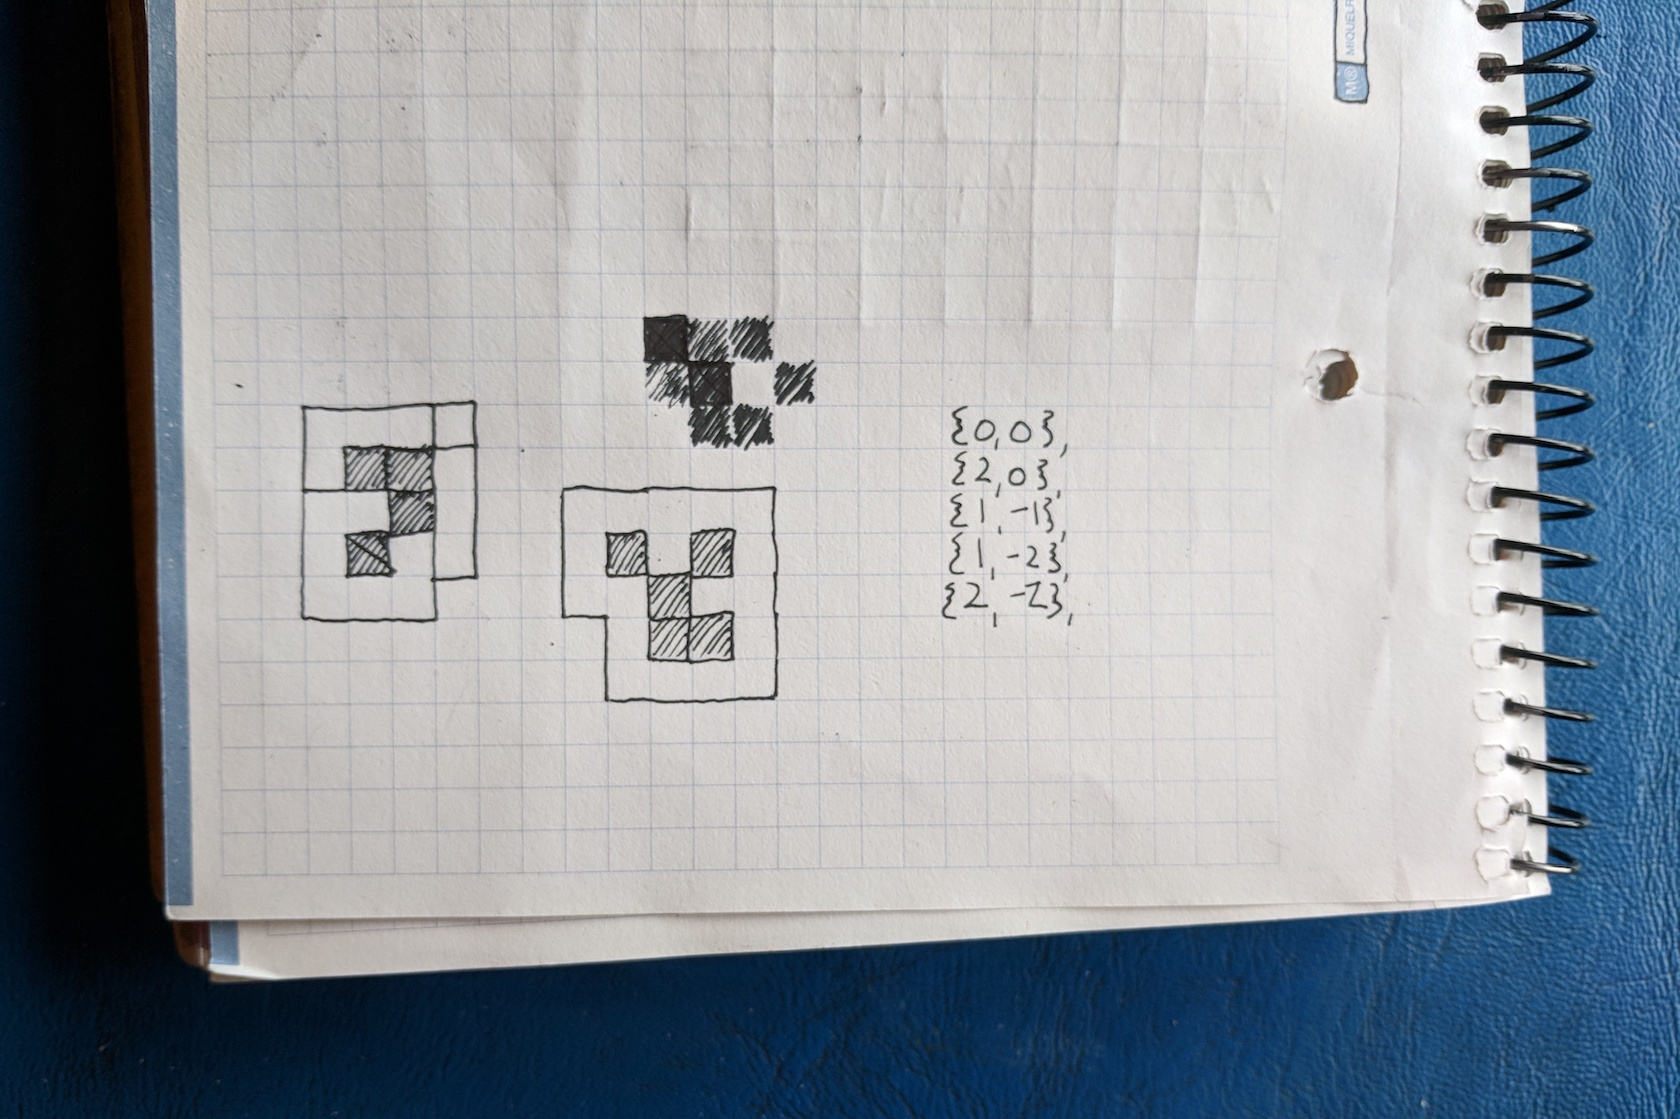 Drawing out Conway's Game of Life